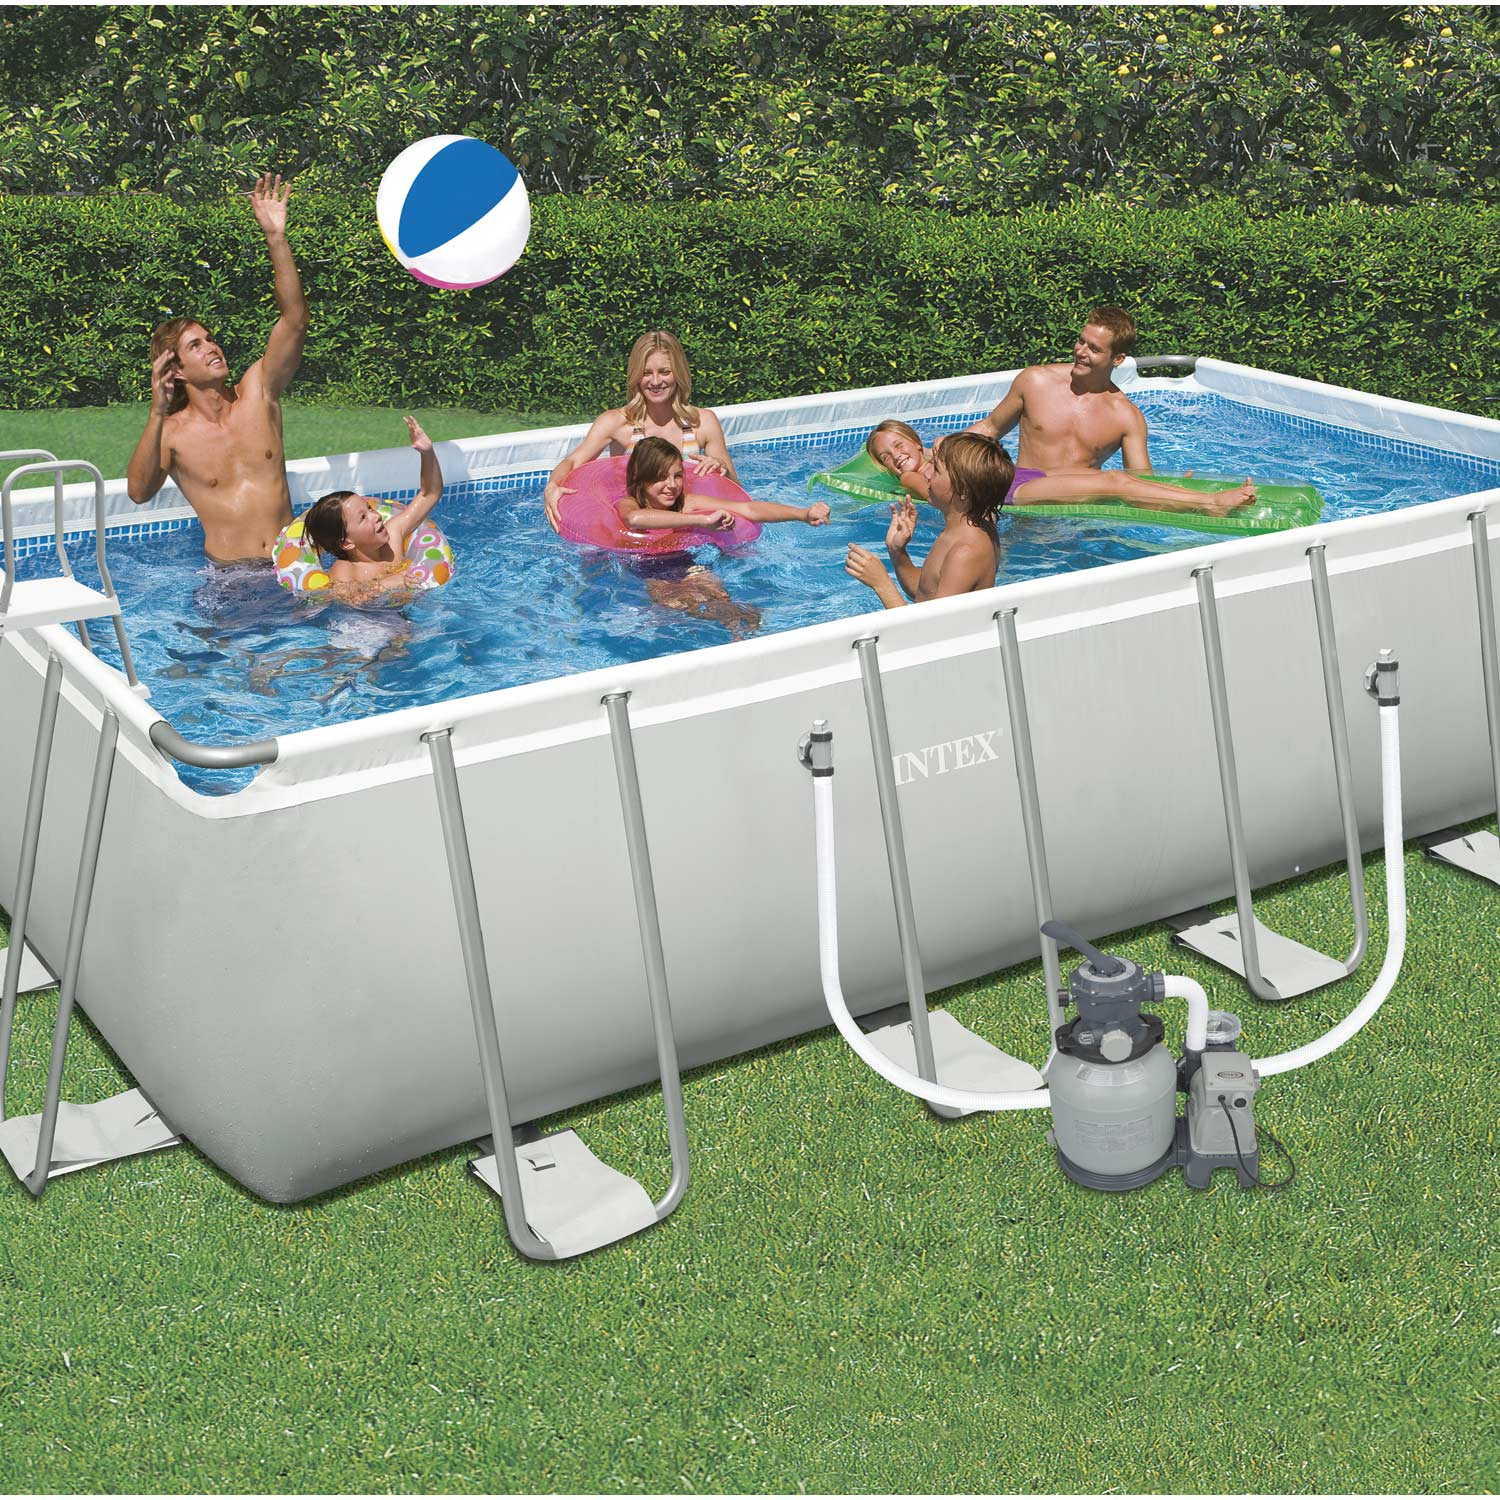 Piscine hors sol autoportante tubulaire ultra silver intex for Piscine hors sol hauteur 1m60